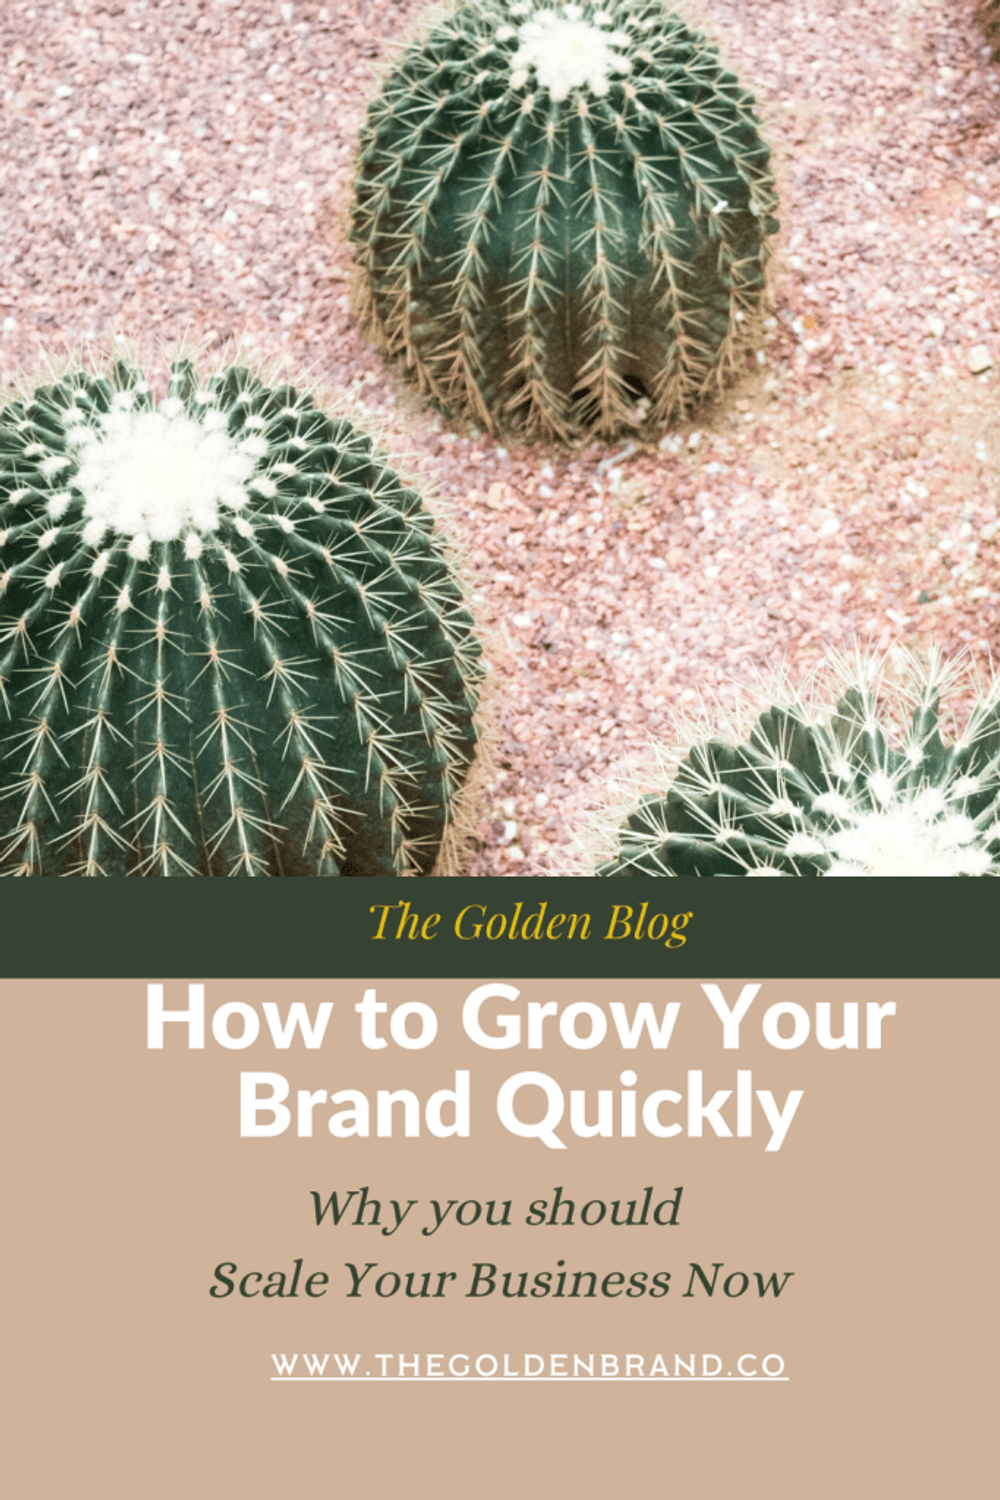 Grow your brand quickly